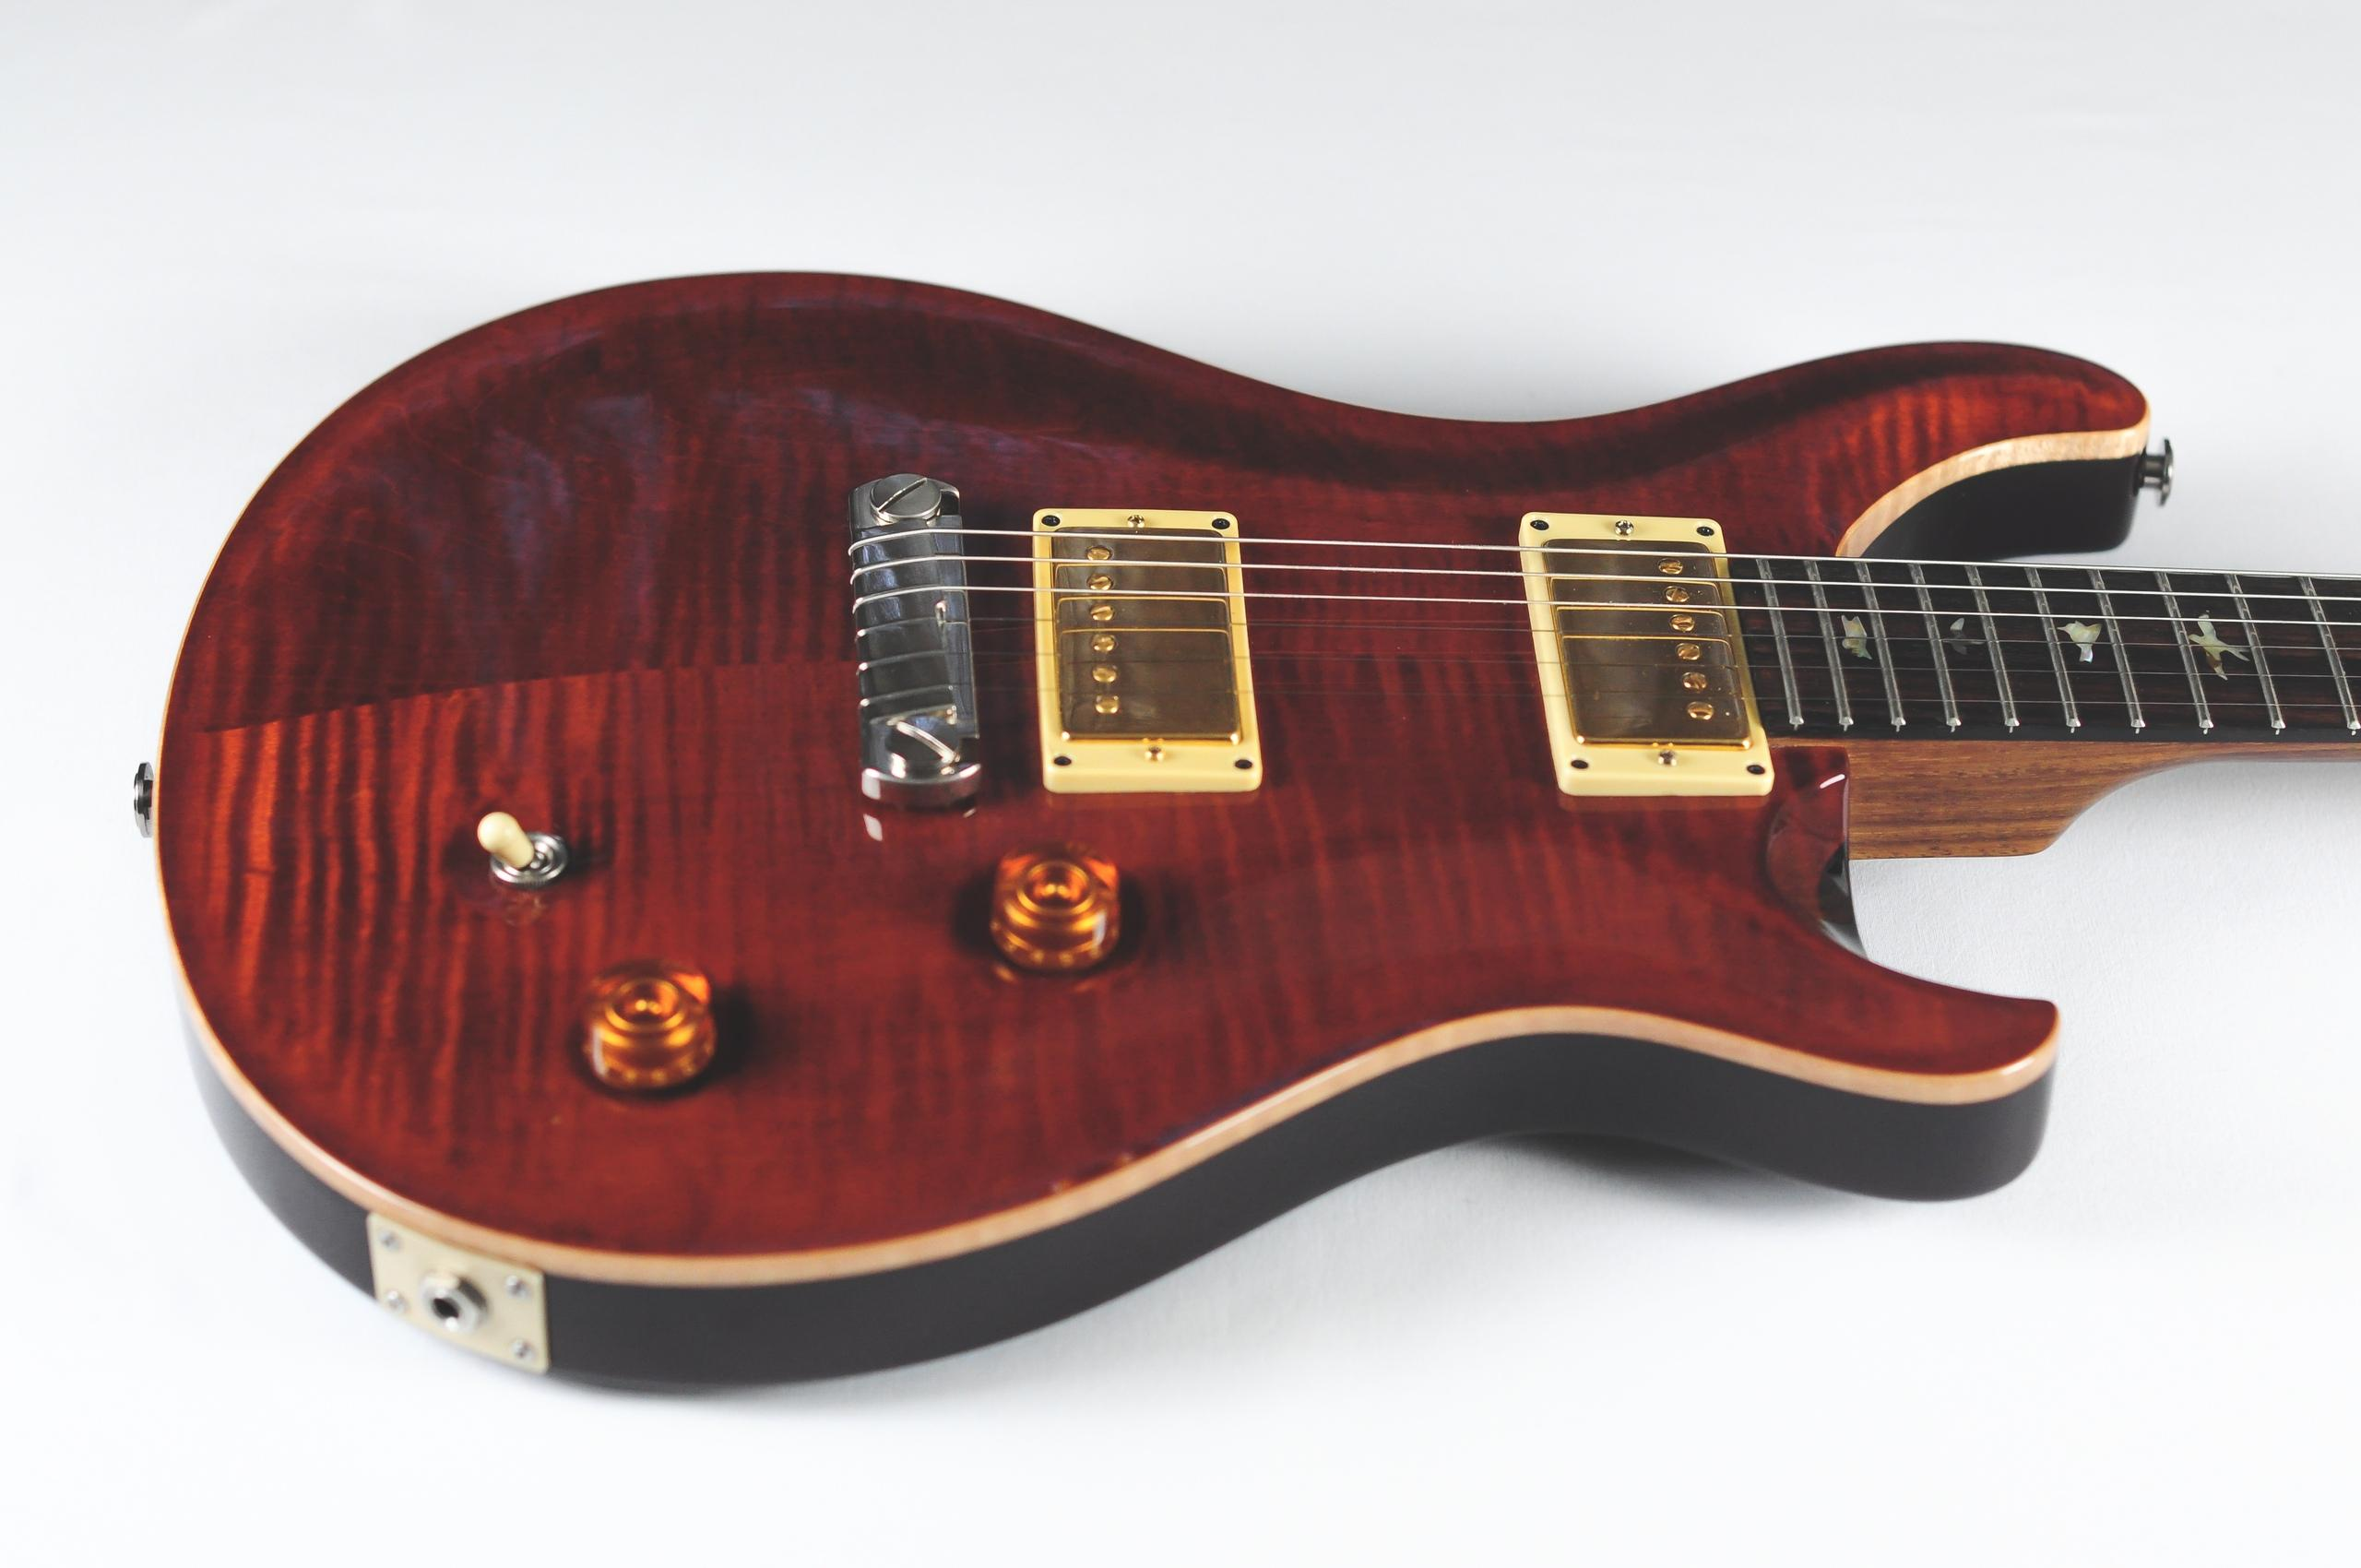 Электрогитара PRS McCarty 20th Anniversary Rosewood neck